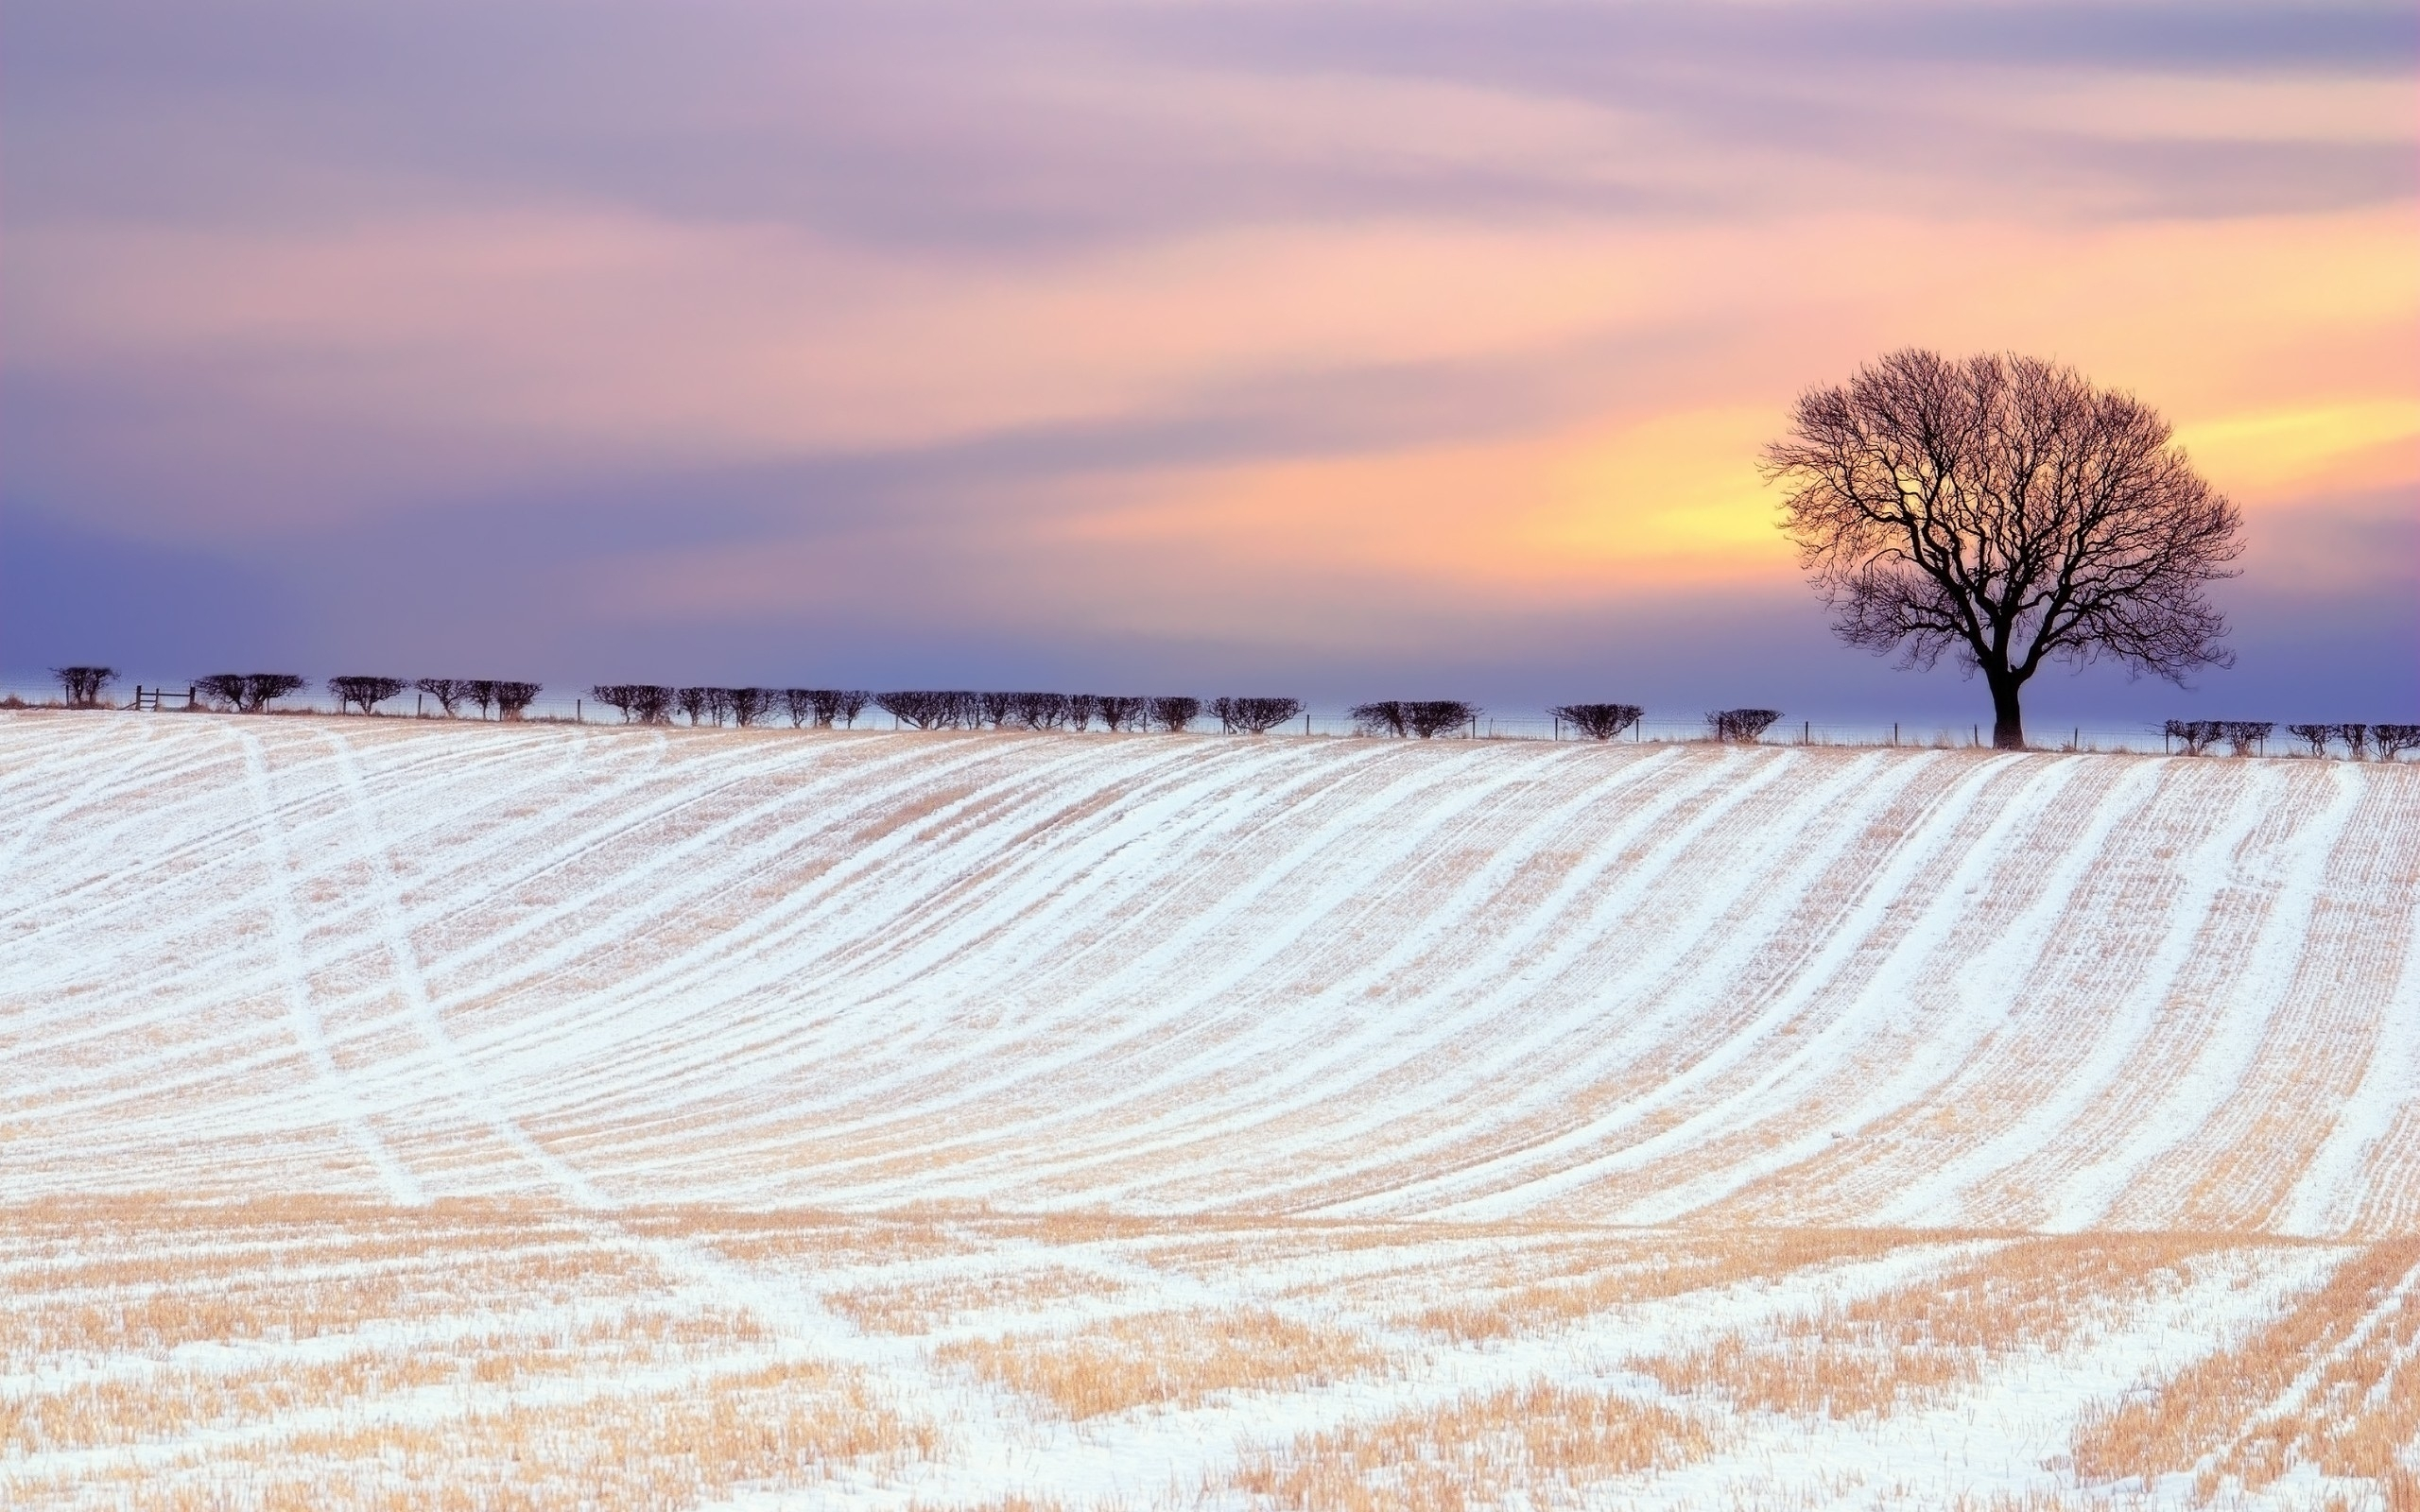 Animated Sunset Wallpaper Winter Field Amp Trees Dawn Wallpapers Winter Field